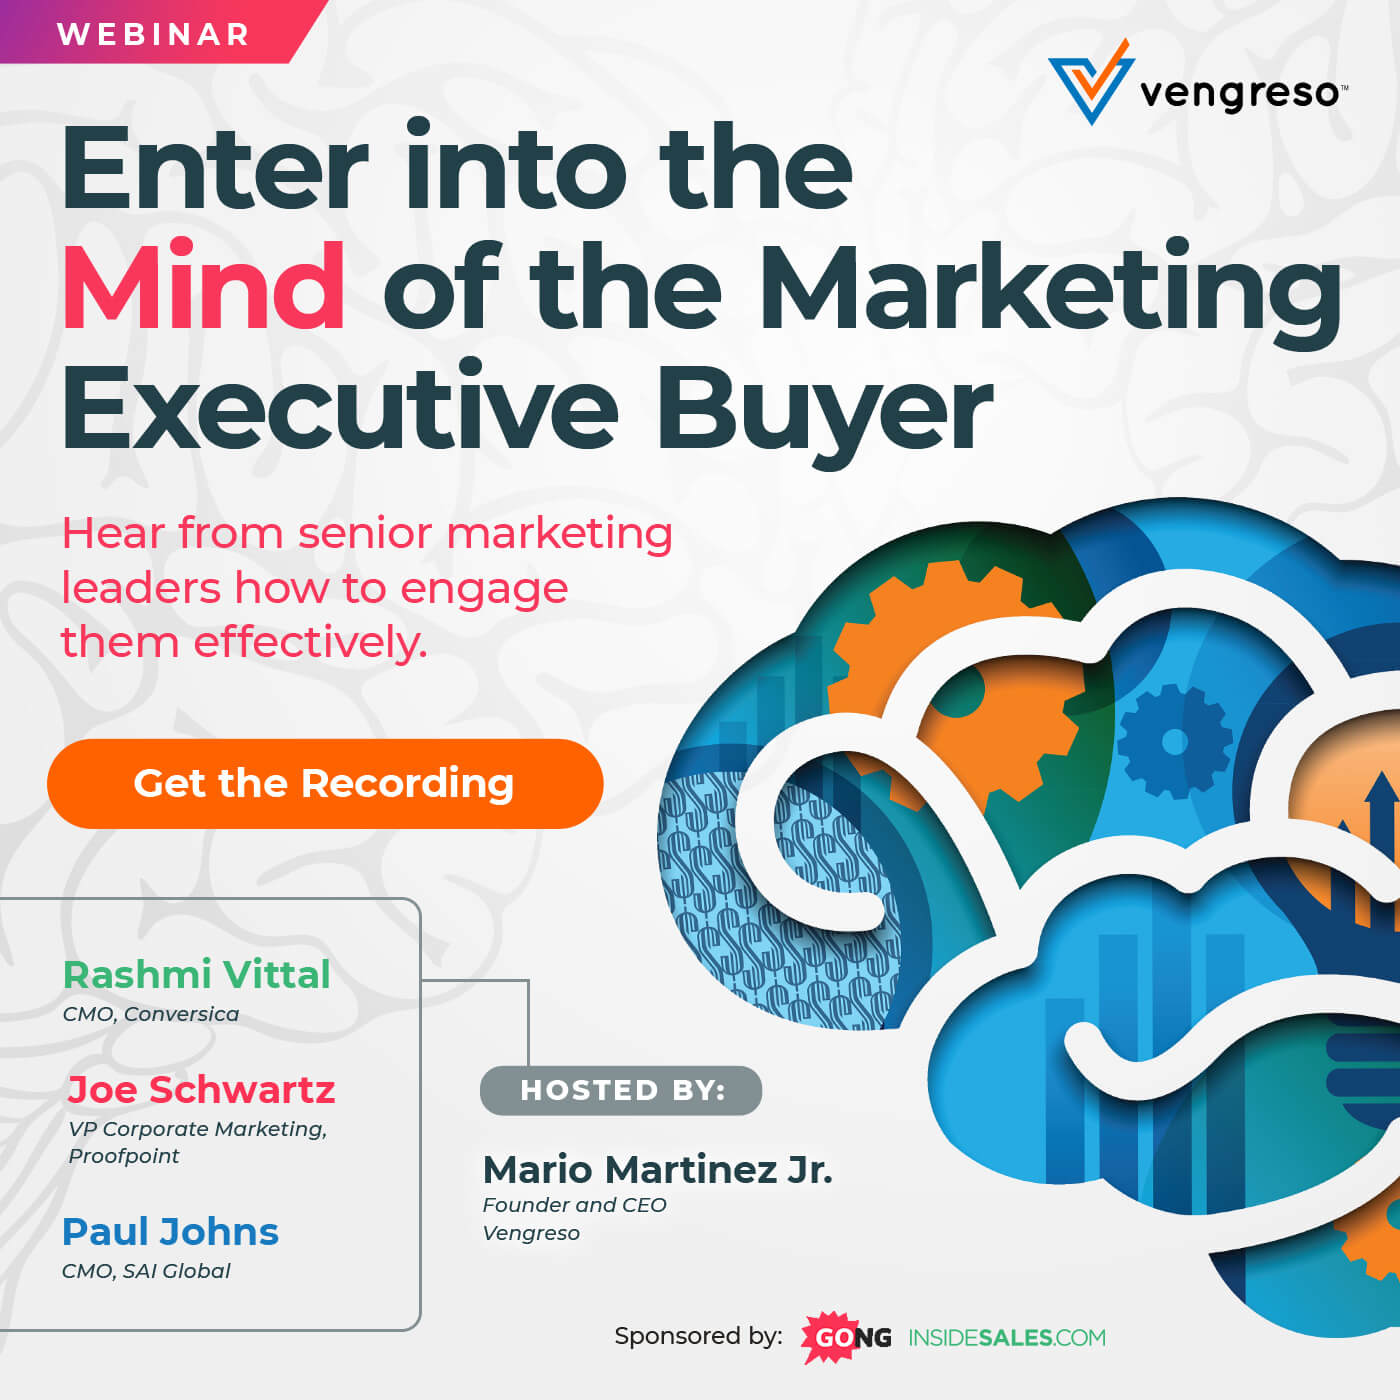 Vengreso Webinar: Enter into the Mind of the Marketing Executive Buyer